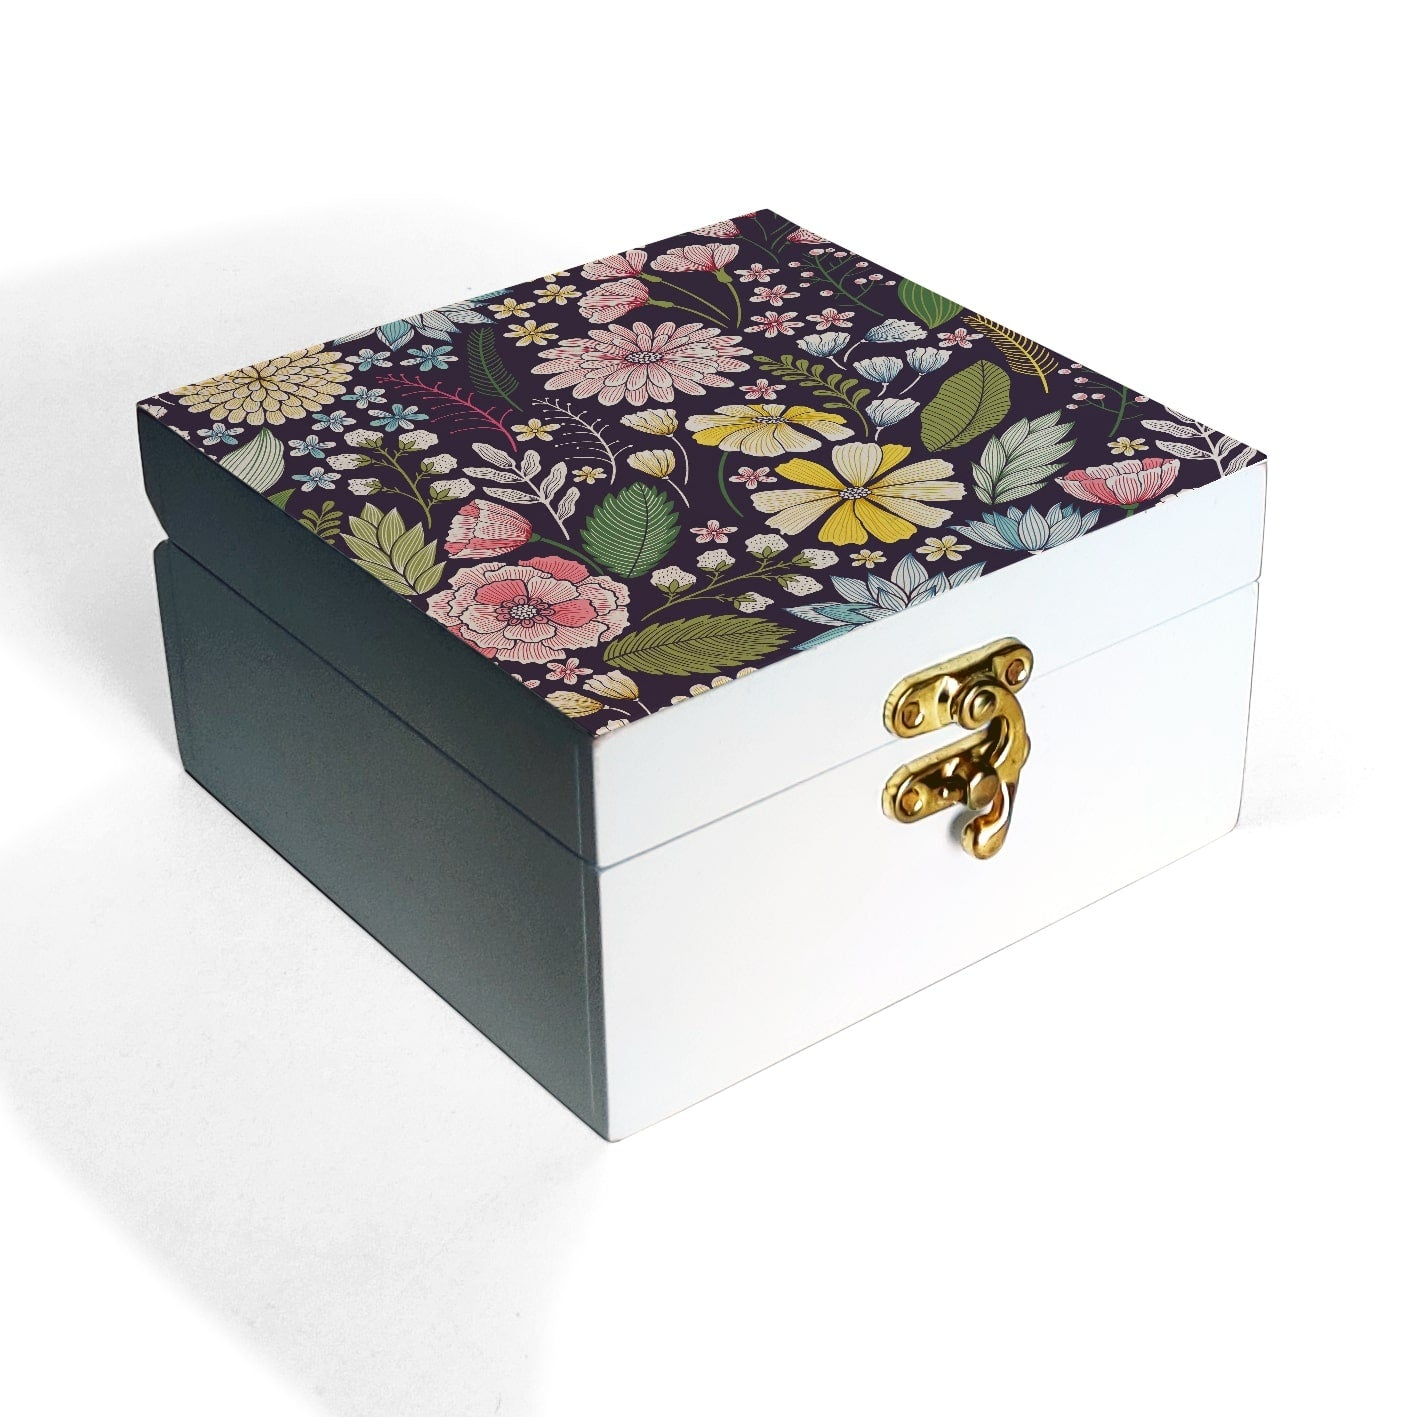 Floral Daisy Box Petite